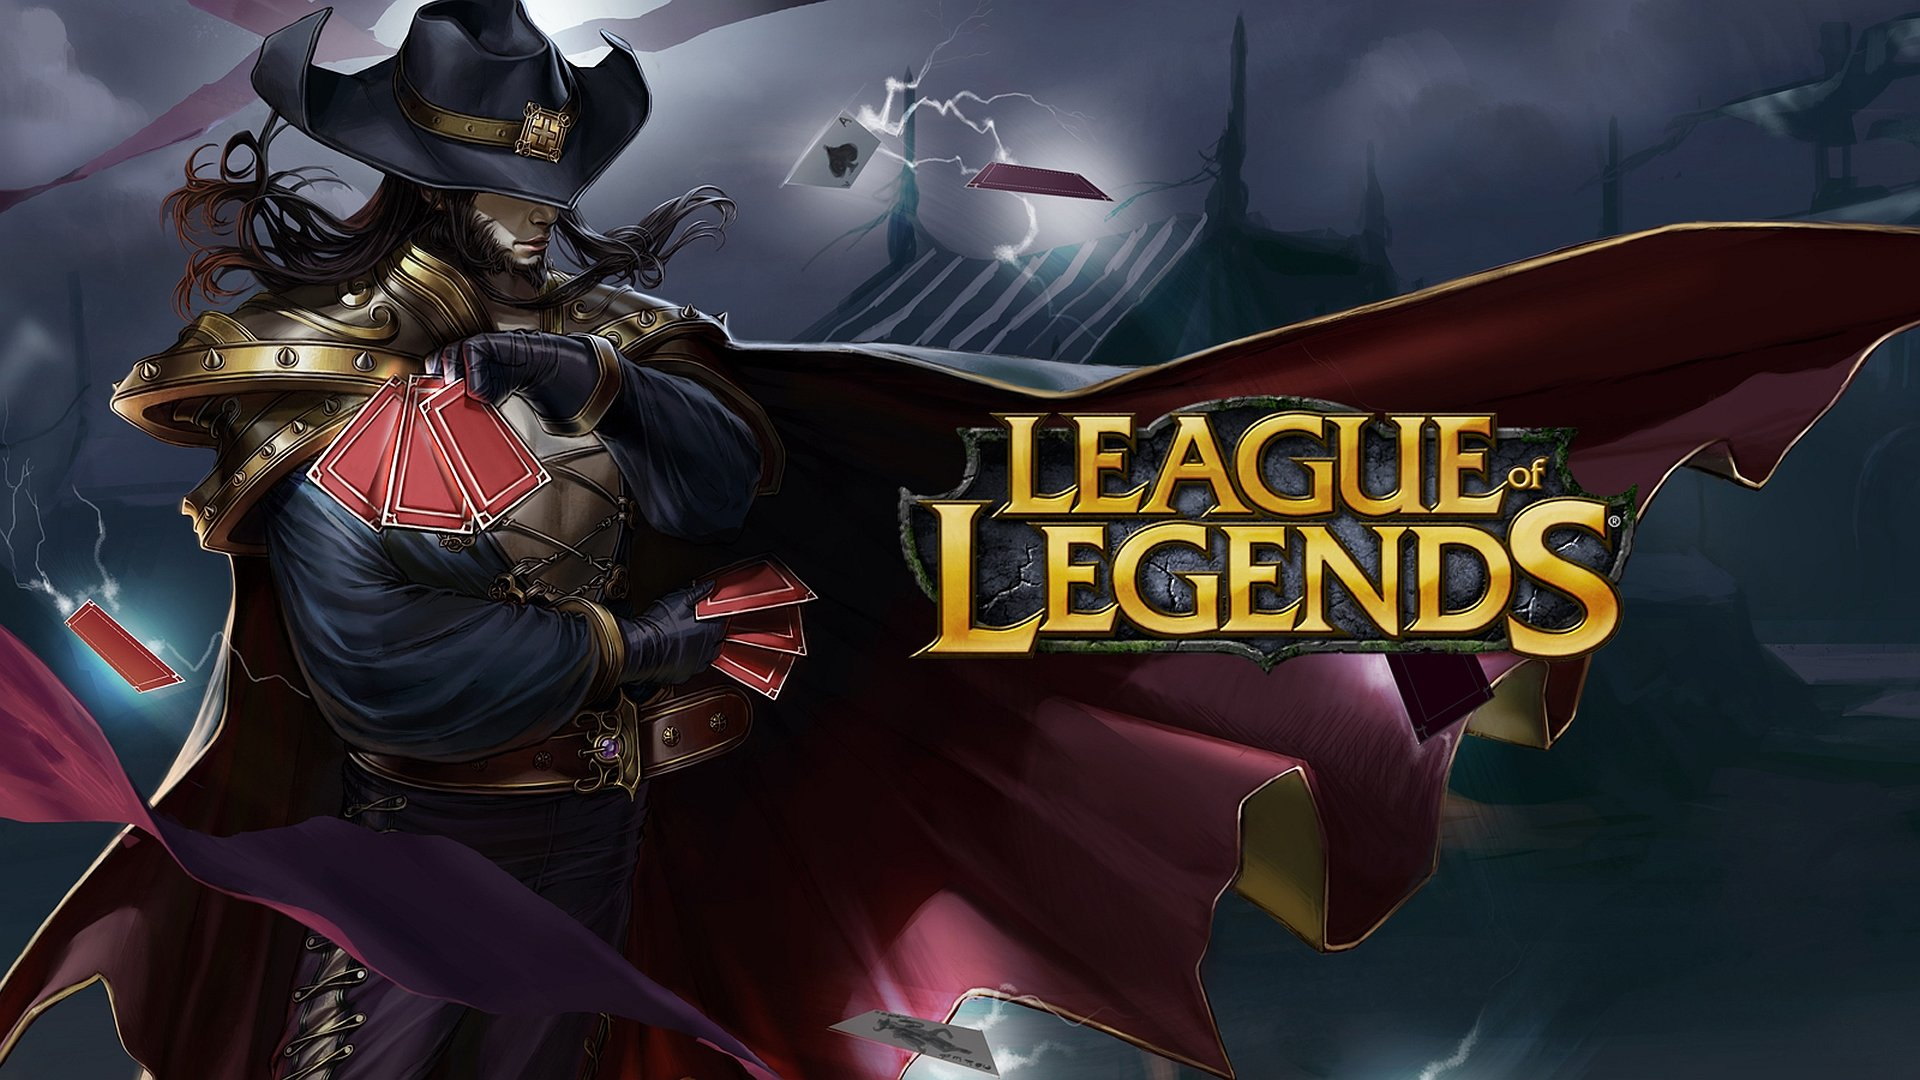 Twisted Fate League Of Legends Wallpapers 1920x1080 Full Hd